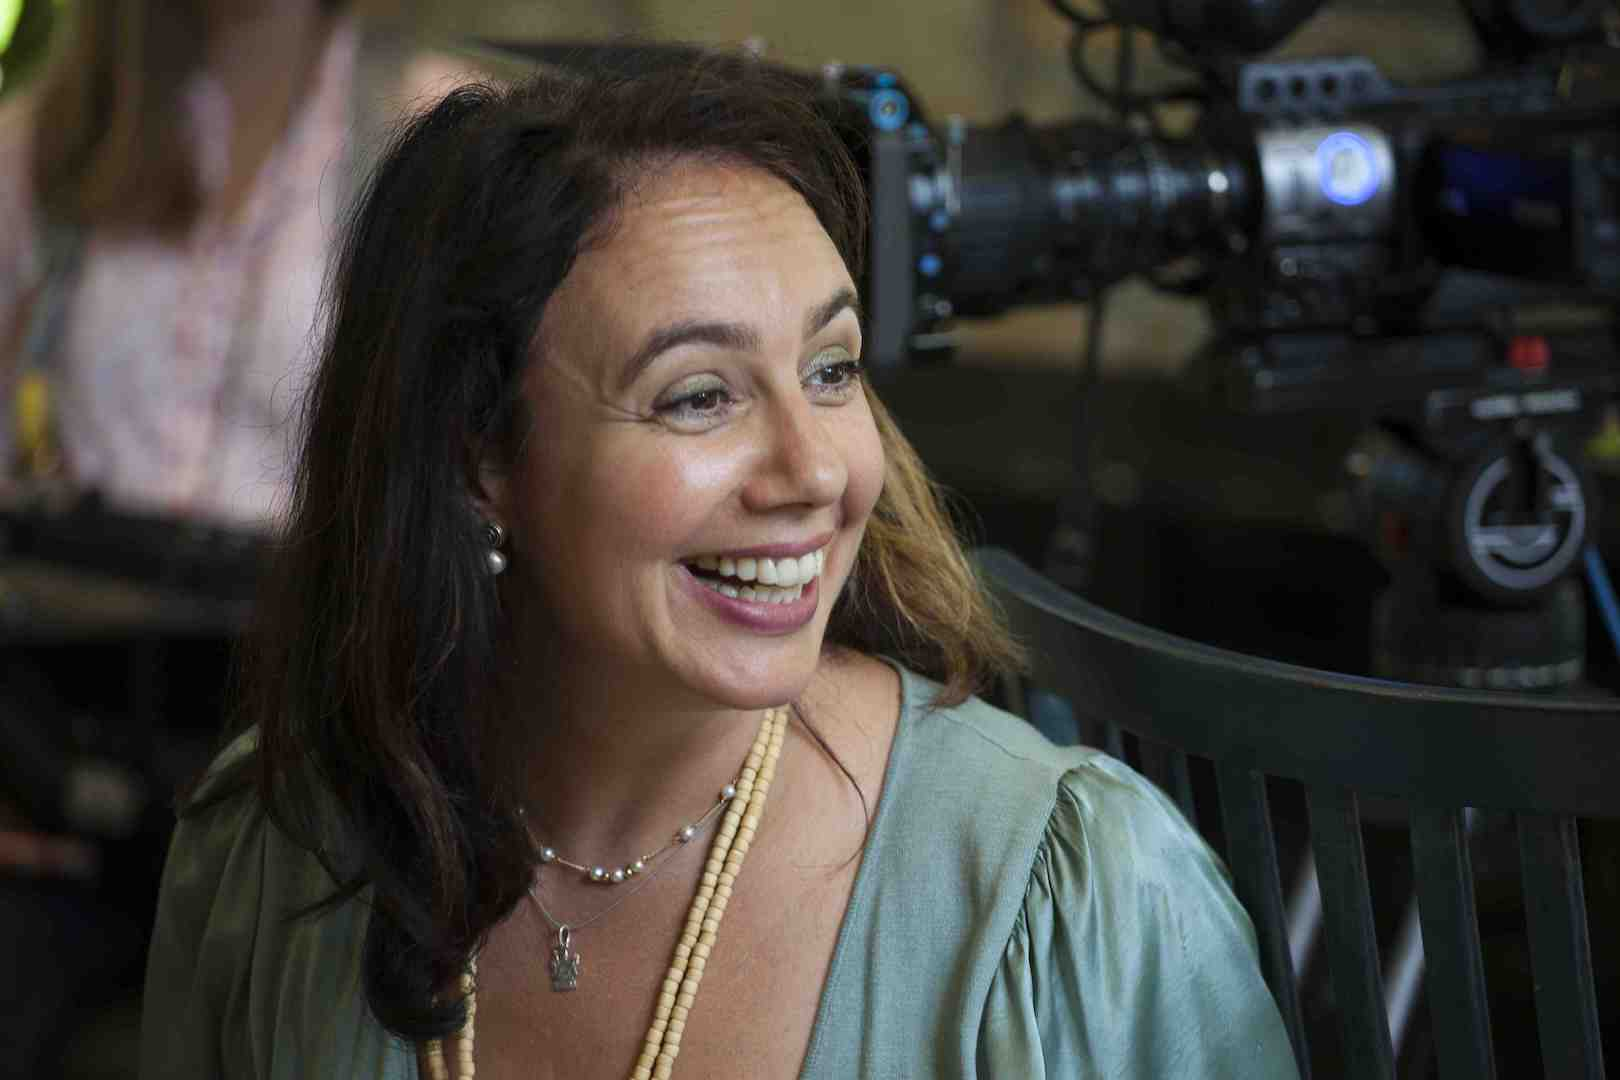 Bernadette Wegenstein laughing with a large camera behind her